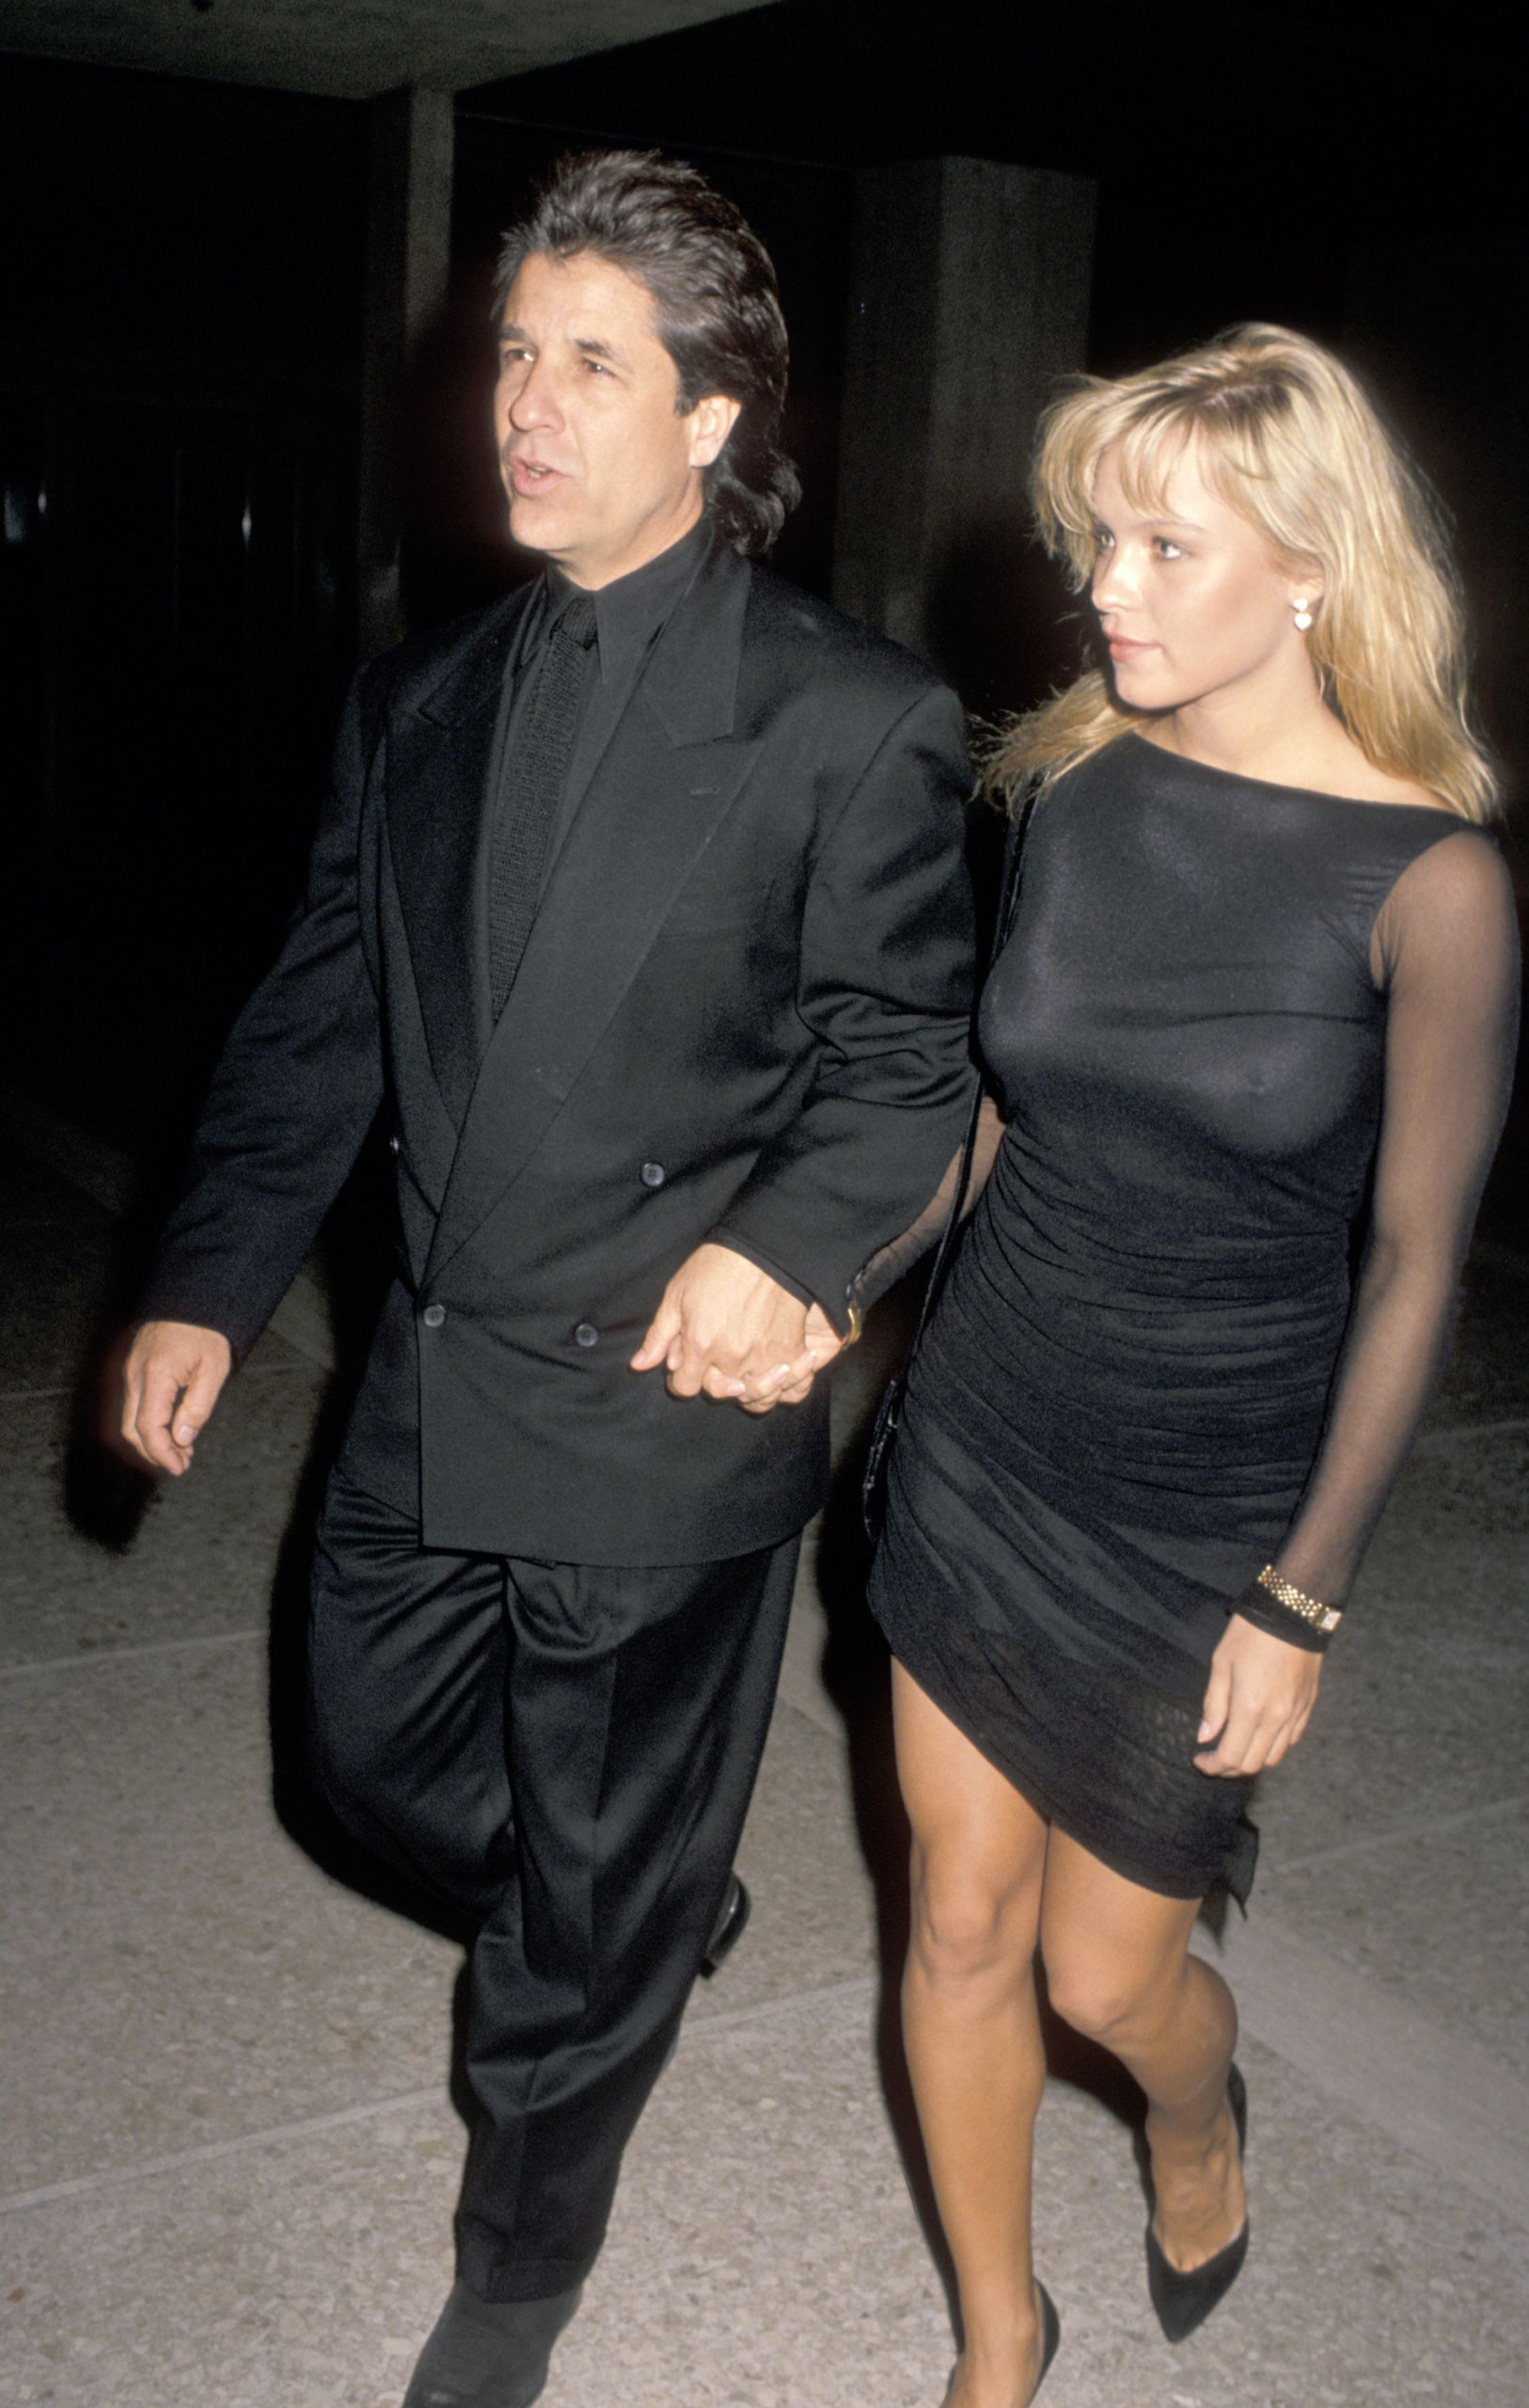 Pamela Anderson's ex husband, Jon Peters says 'I'm an old fool he reveals he paid off her $200k debt during their 12-day marriage